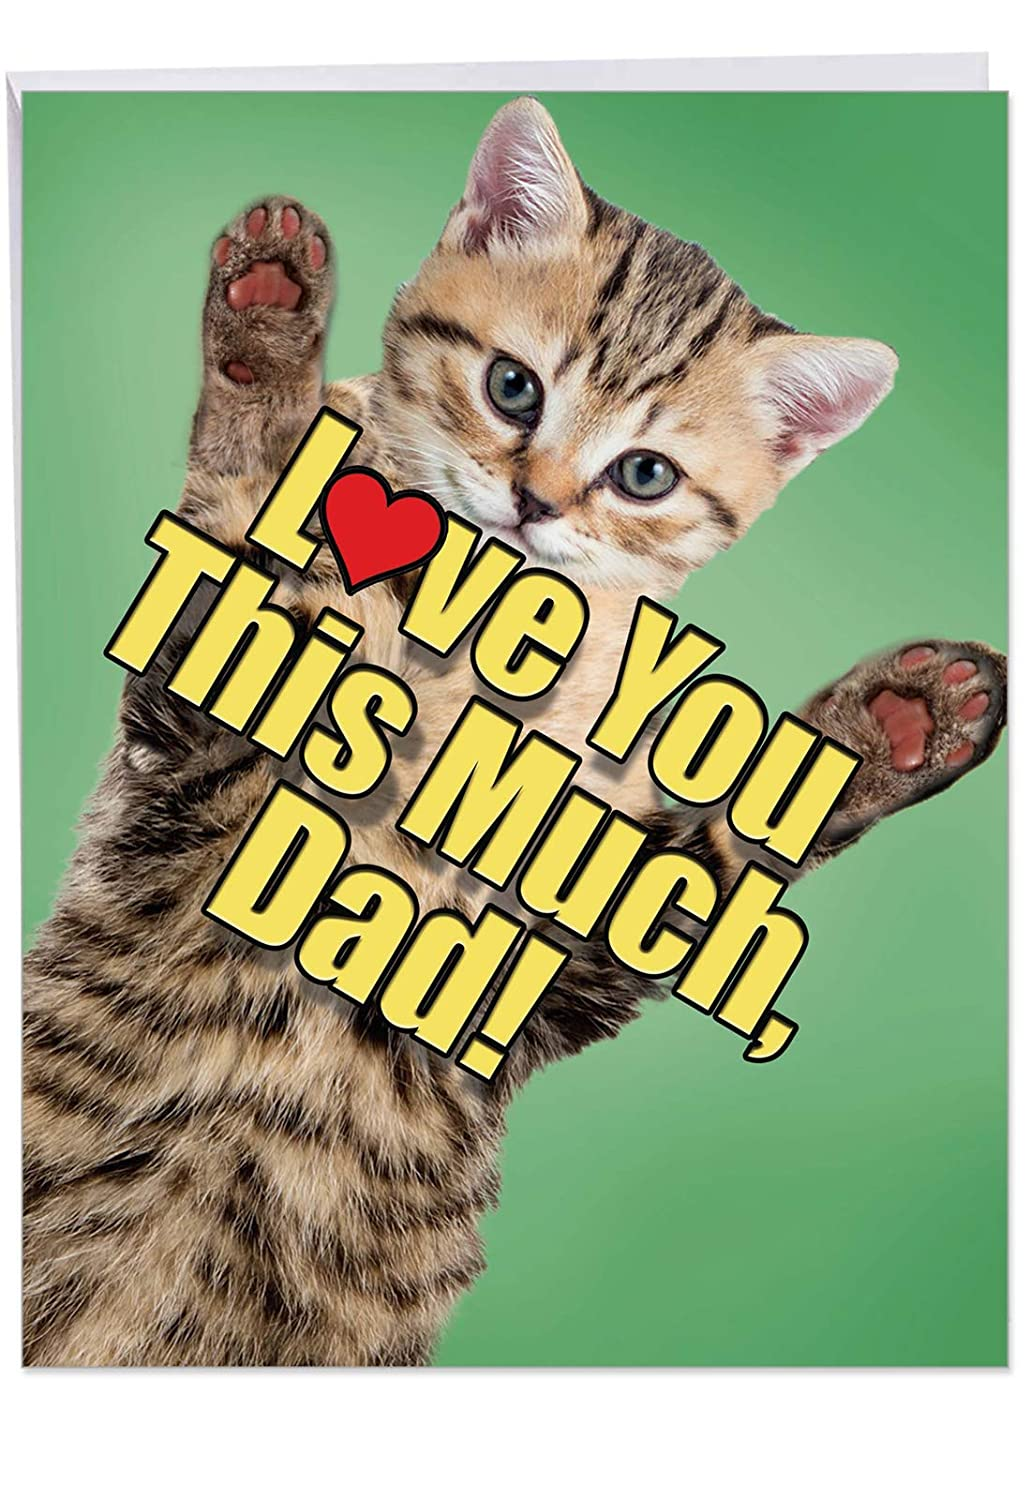 Cat Love You This Much Father Big Happy Birthday Card For Dad With Envelope 8 5 X 11 Inch Adorable Kitten Animal Bday Celebration Card For